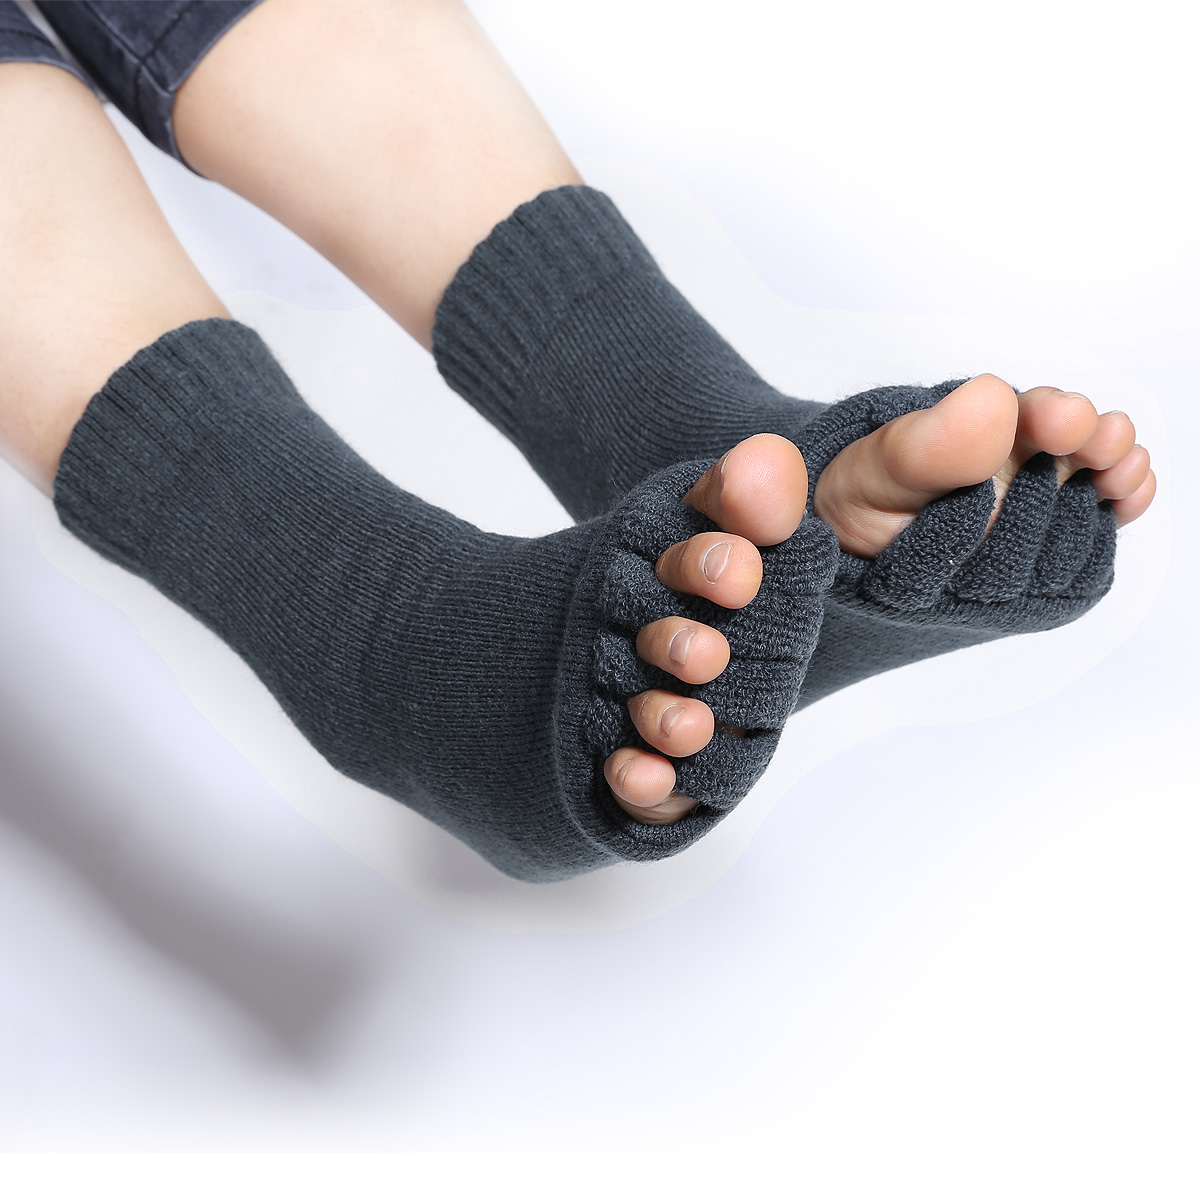 Yoga Shoes For Bunions: Massage Toe Socks Foot Blood Circulation Foot Pain Relief